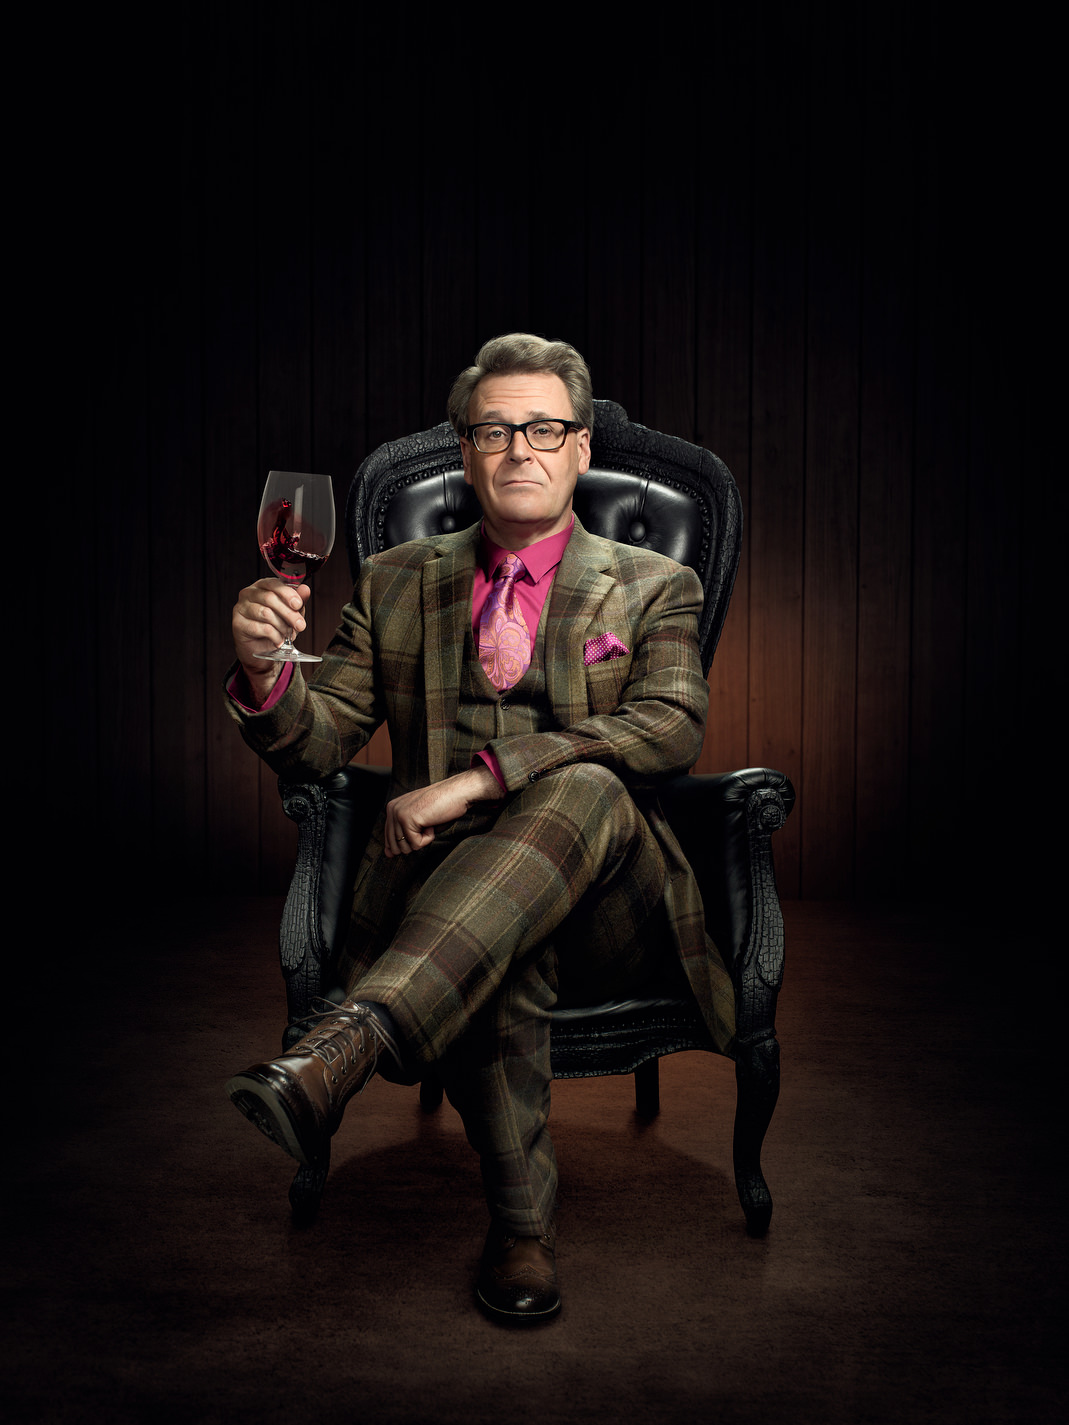 greg proops stand upgreg proops star wars, greg proops, greg proops wife, greg proops nightmare before christmas, greg proops phantom menace, greg proops reddit, greg proops podcast, greg proops twitter, greg proops net worth, greg proops imdb, greg proops bob the builder, greg proops tour, greg proops whose line is it anyway, greg proops whose line, greg proops stand up, greg proops wiki, greg proops schooled, greg proops instagram, greg proops australia, greg proops clive anderson